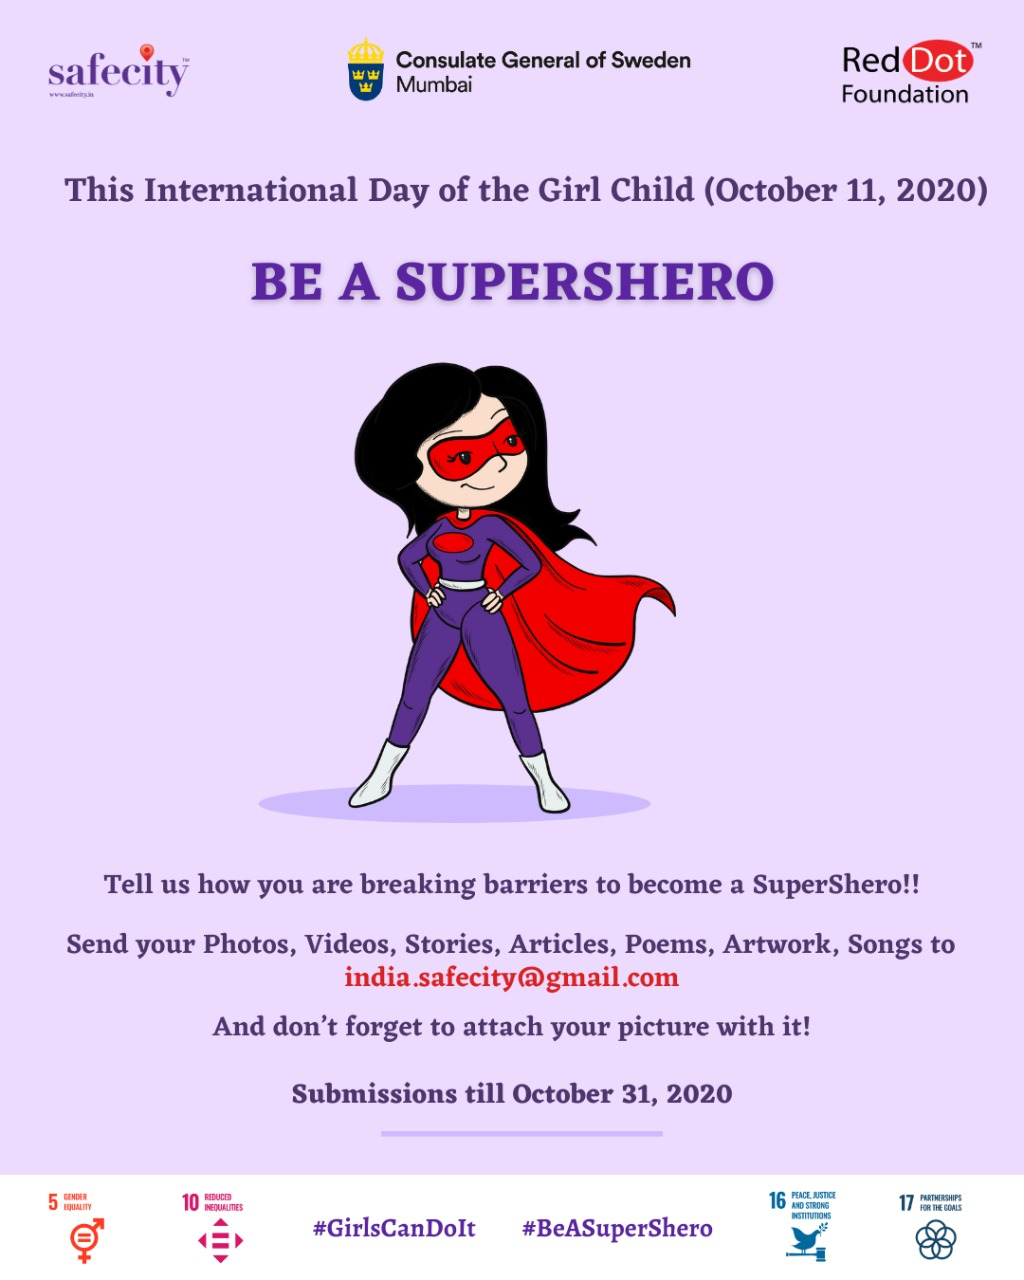 Be A SuperShero